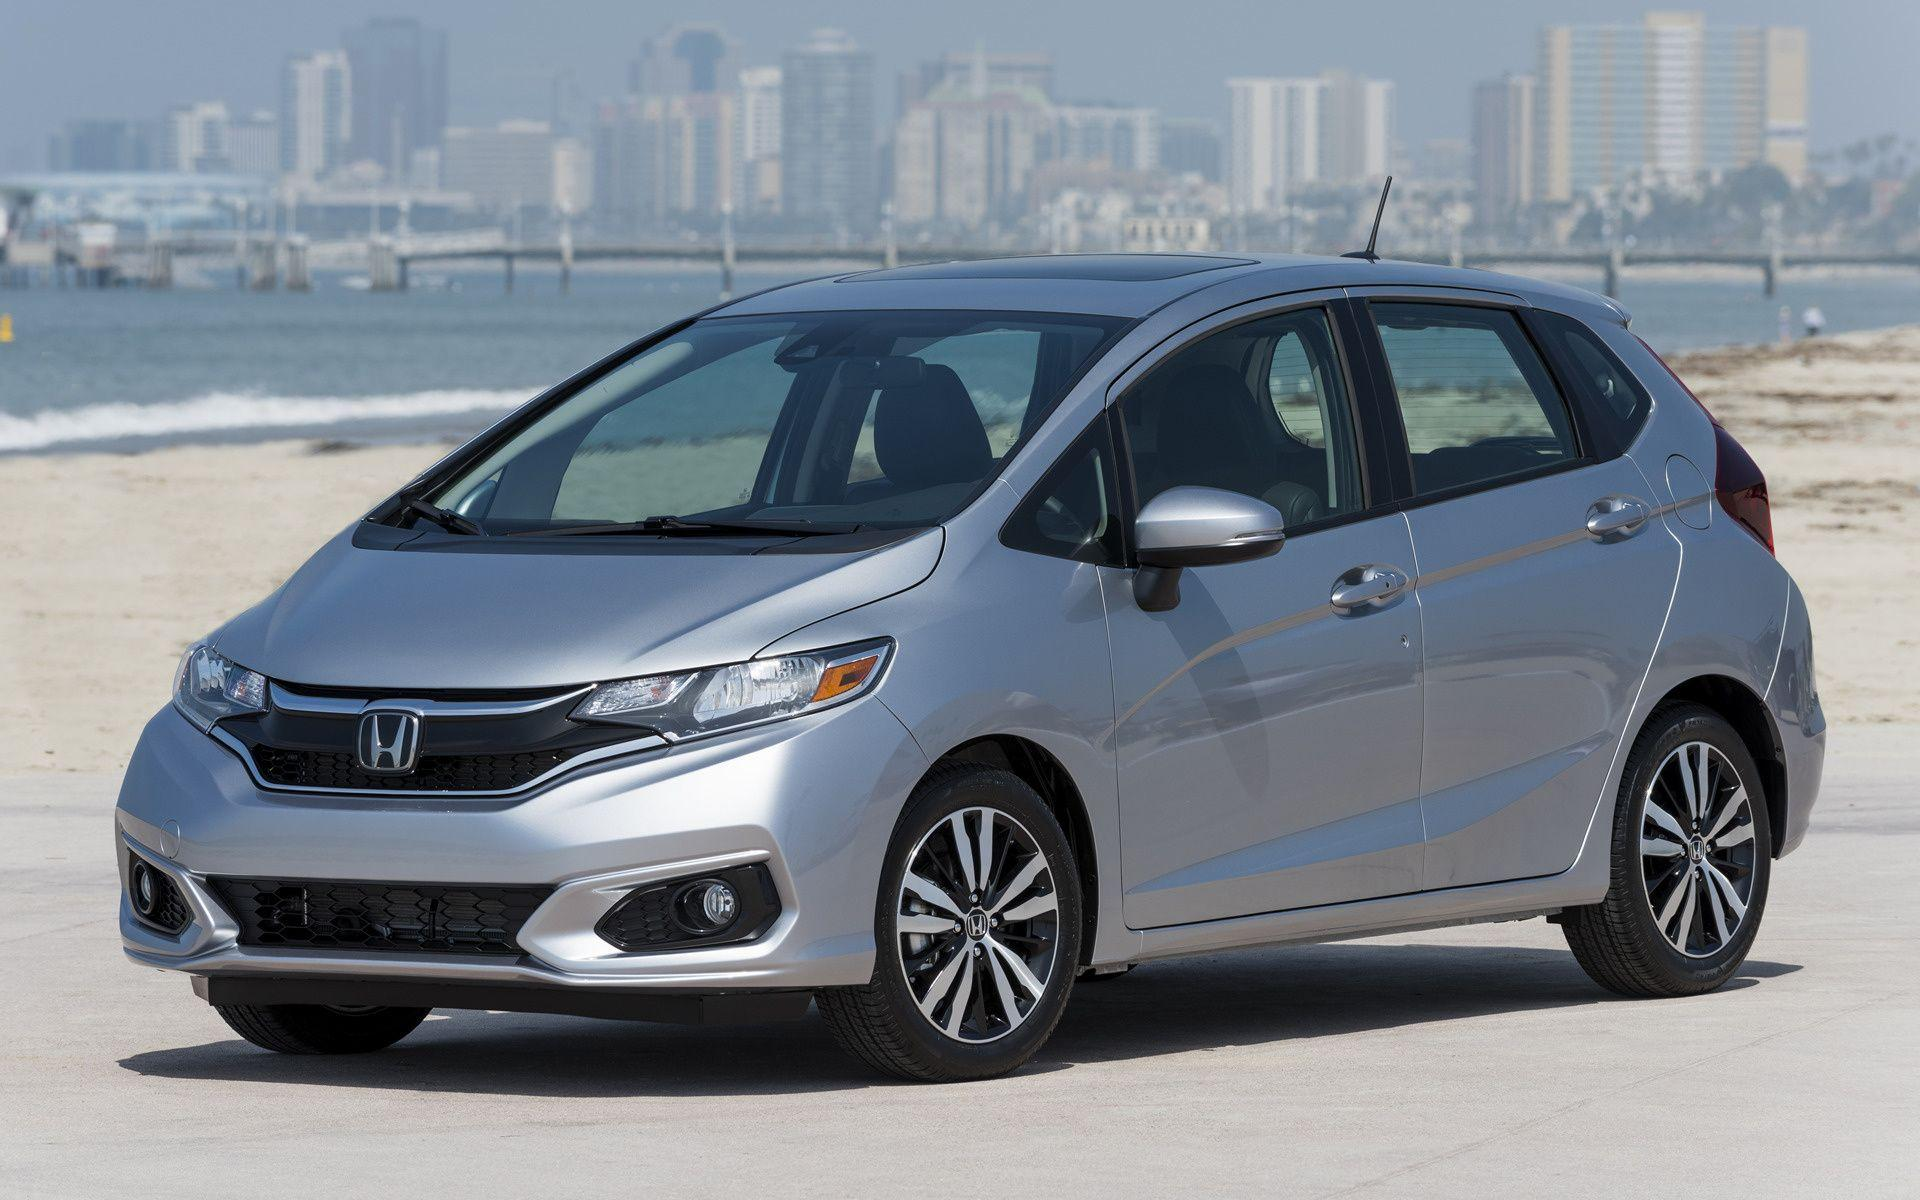 Honda Fit (2018) Wallpapers and HD Images - Car Pixel